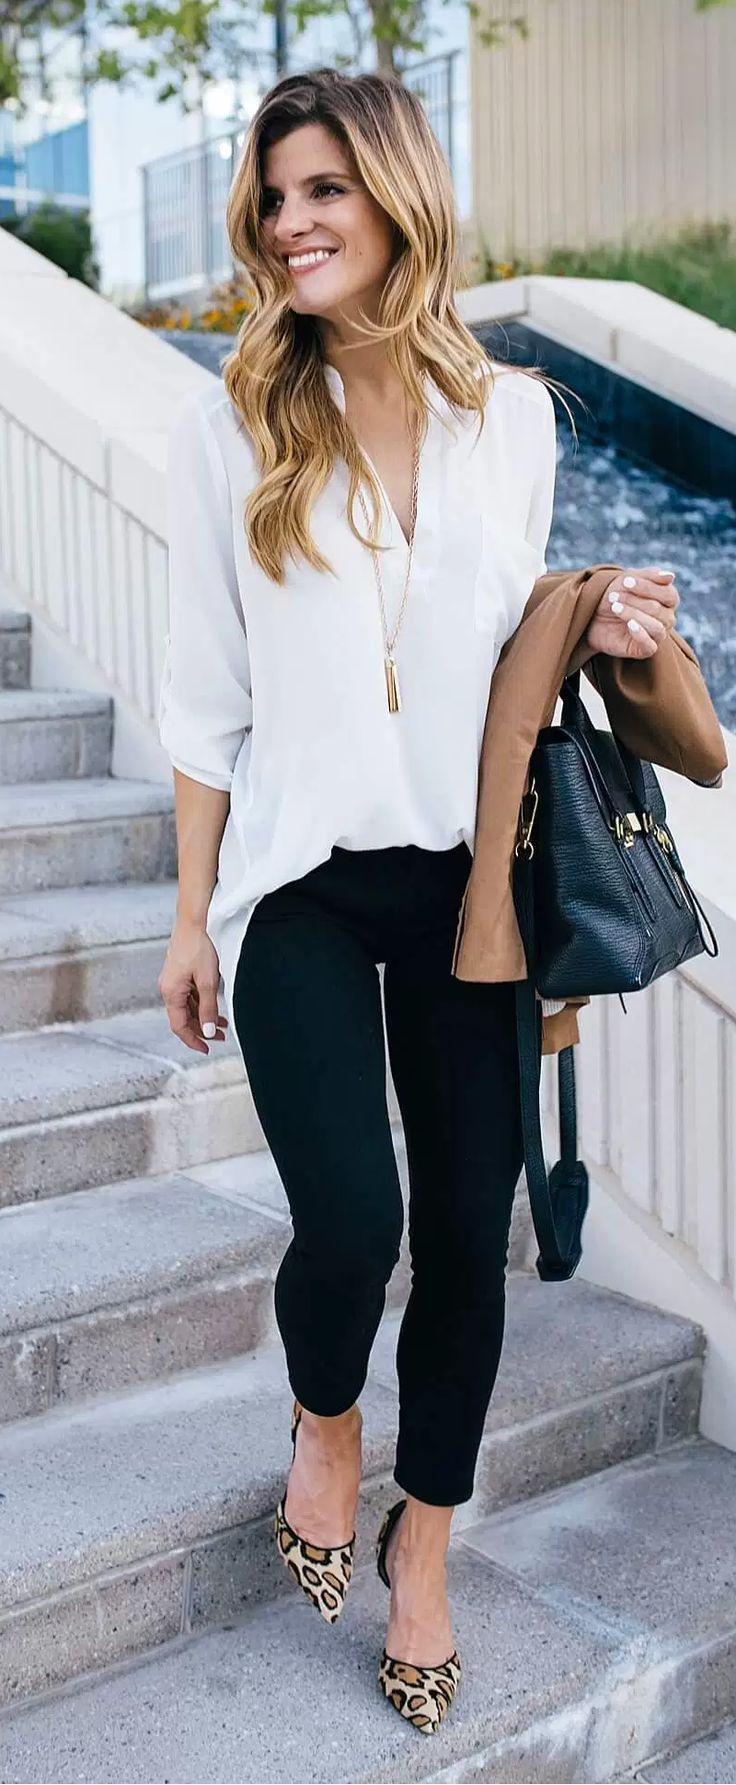 best 25+ white blouse outfit ideas on pinterest | vestido de lona